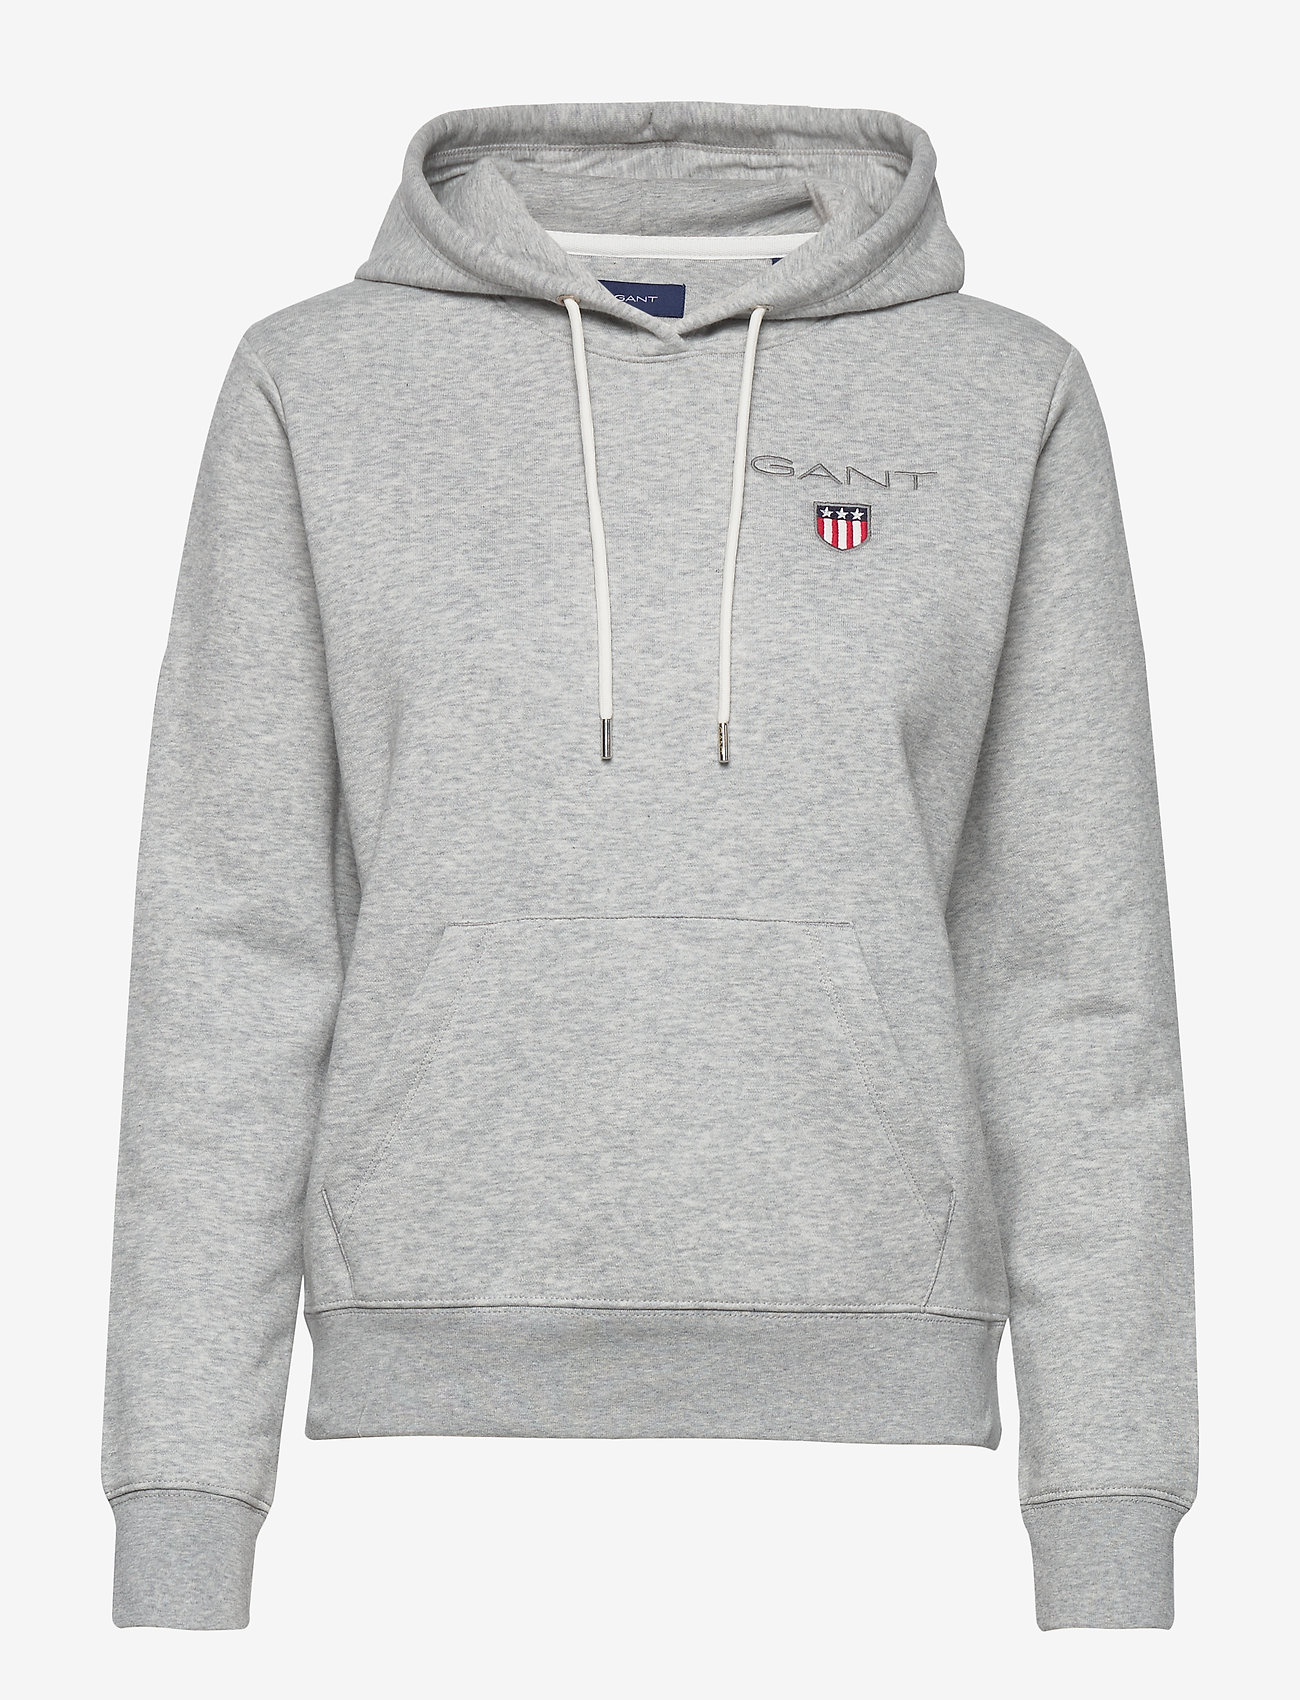 Gant - D1. MEDIUM SHIELD HOODIE - hettegensere - light grey melange